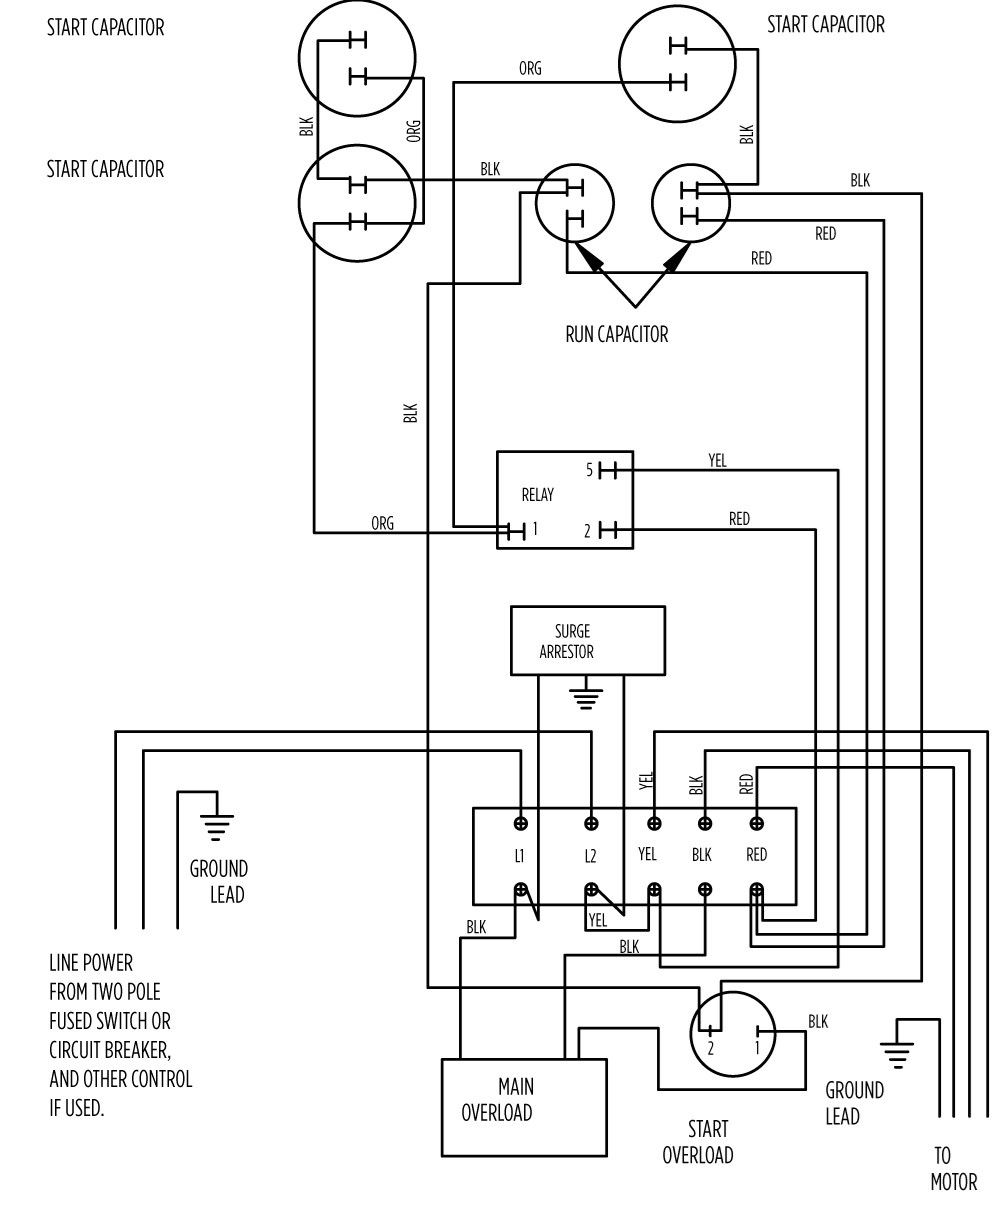 Aim Manual Page 57 Single Phase Motors And Controls Motor Wiring Is This Correct 10 Hp Standard 282 202 9210 Or 9230